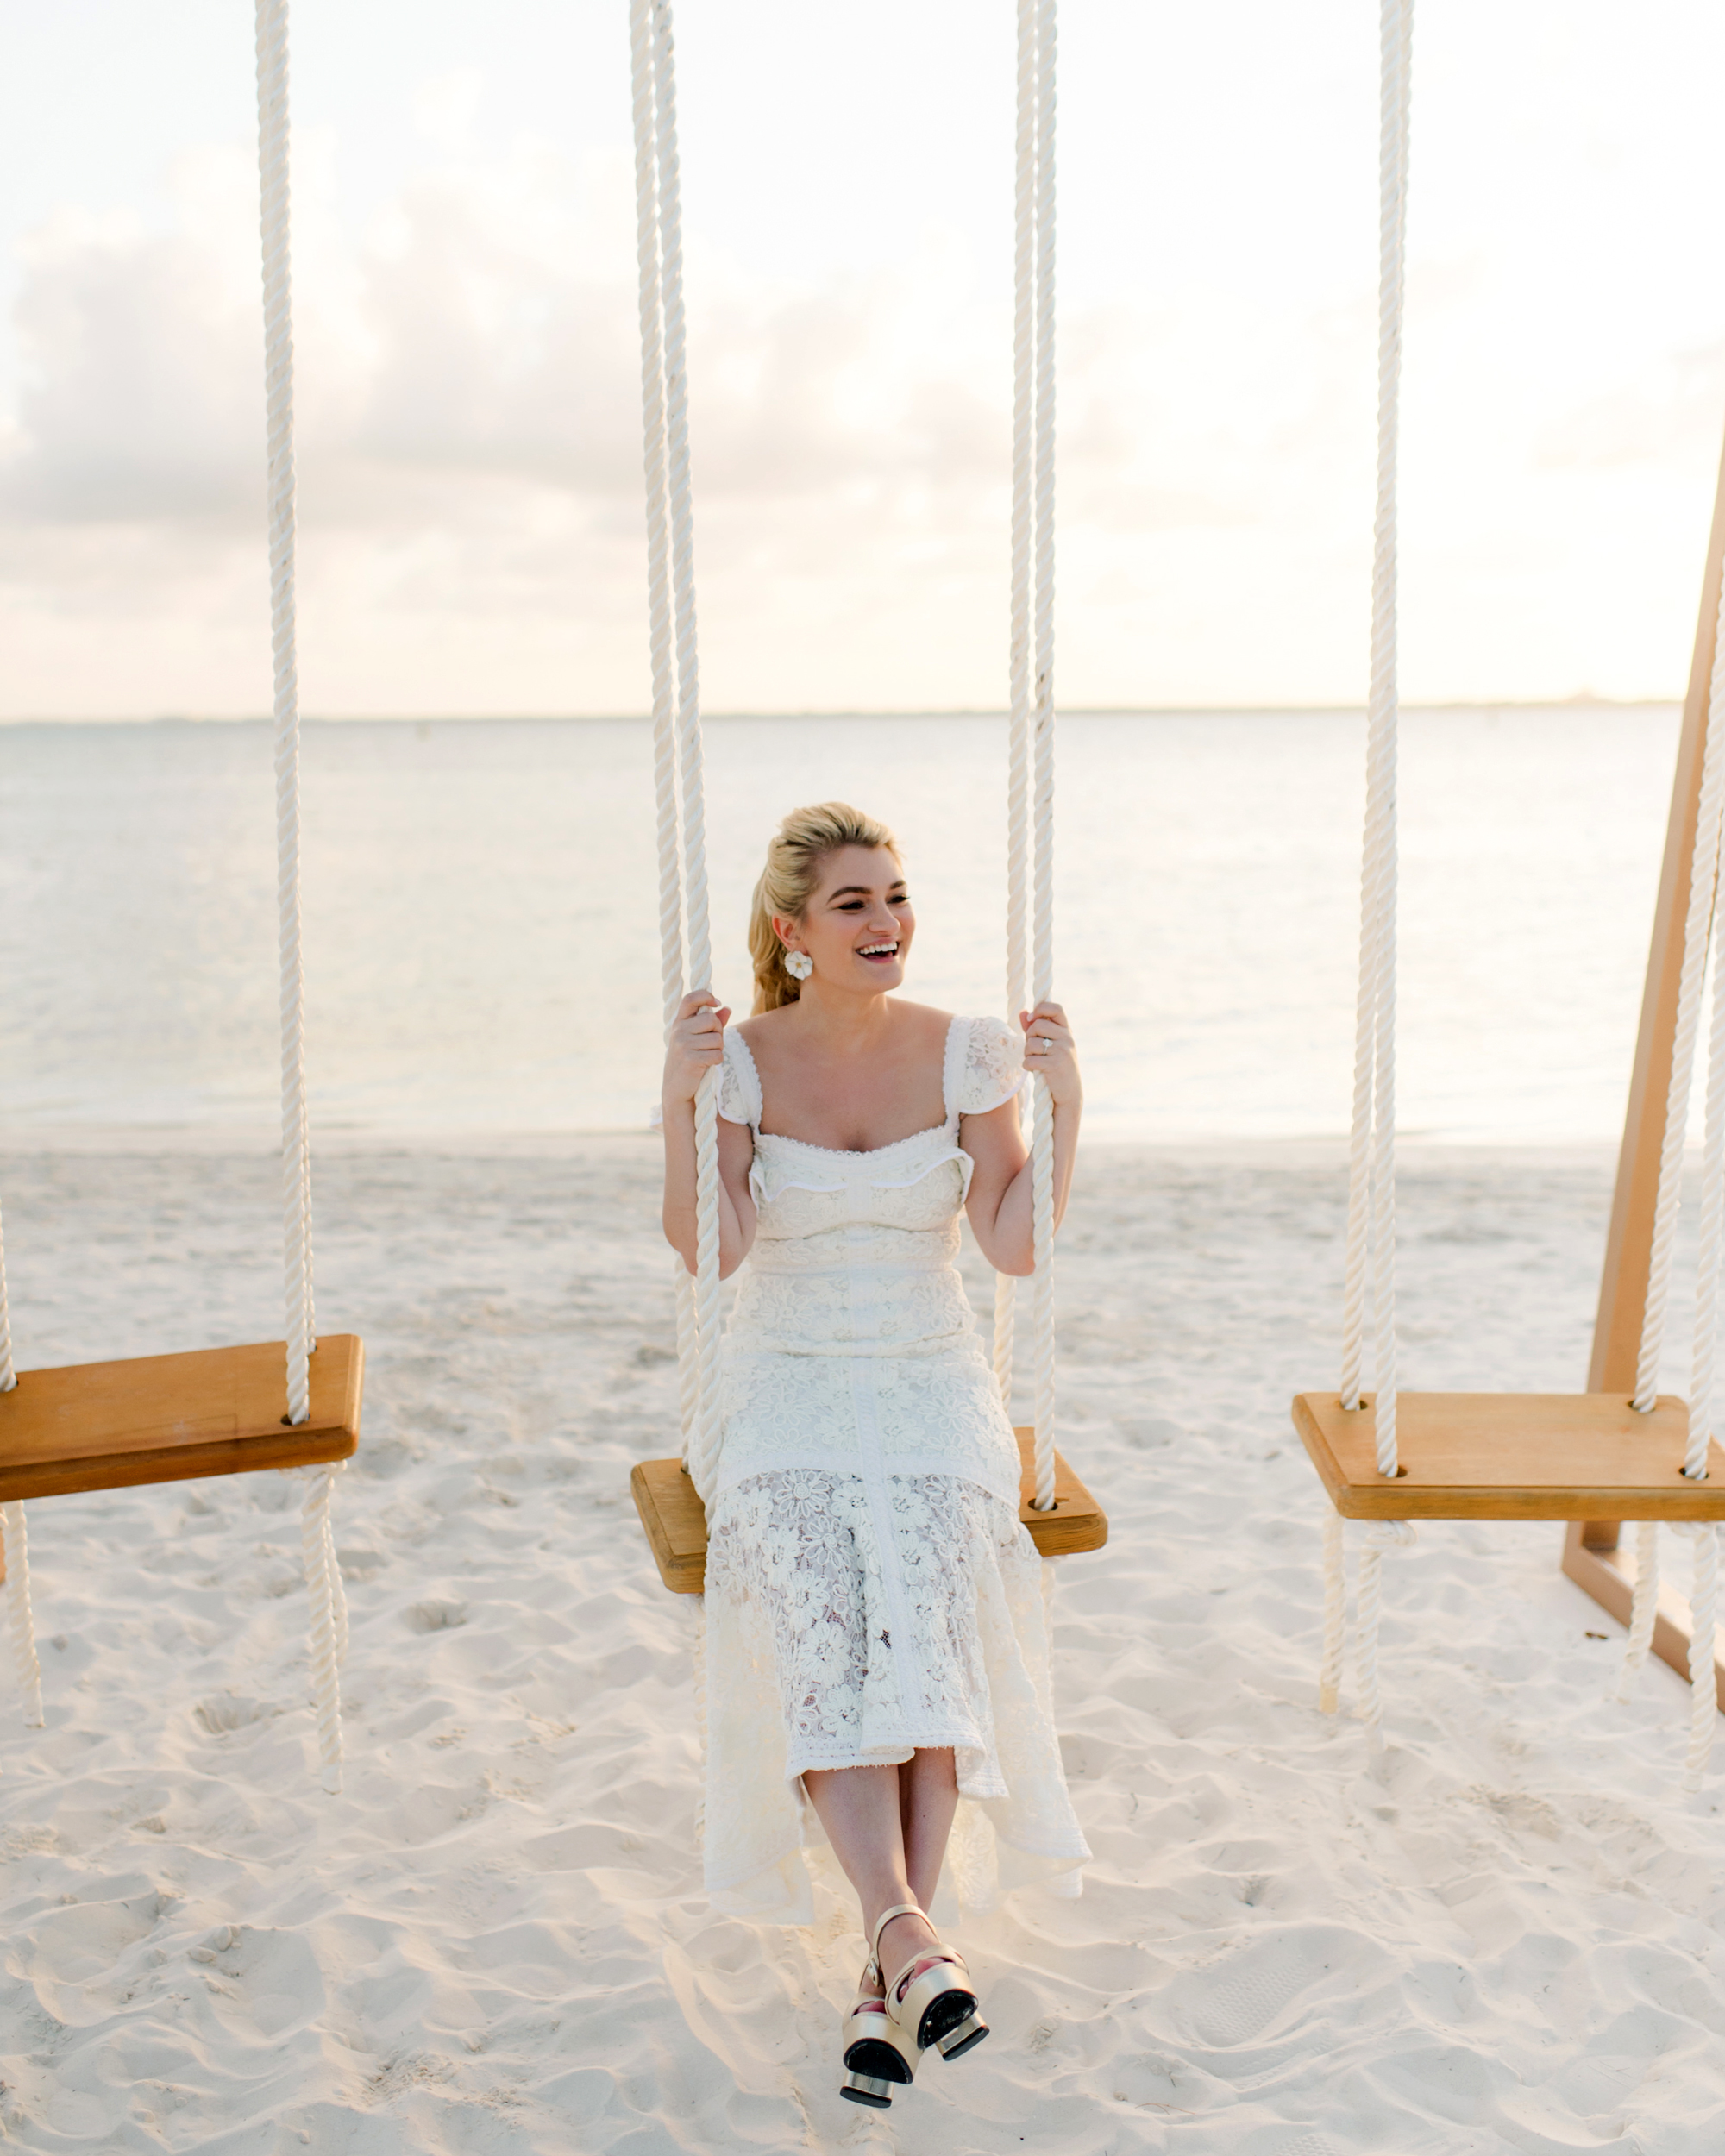 bride sitting on wood and rope swing set on beach